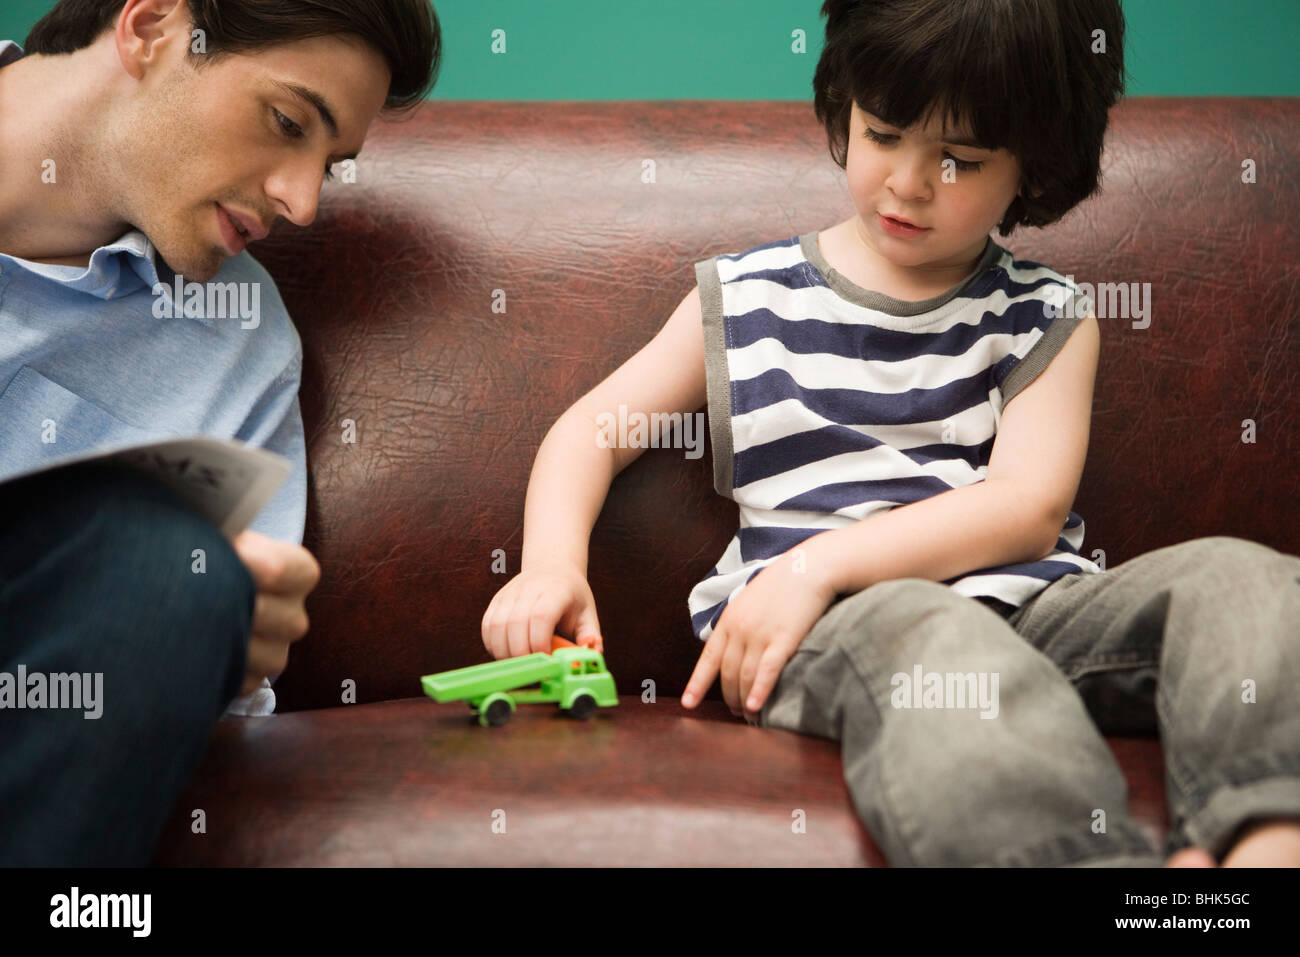 Boy Toys For Dads : Little boy sitting on sofa with father playing toy